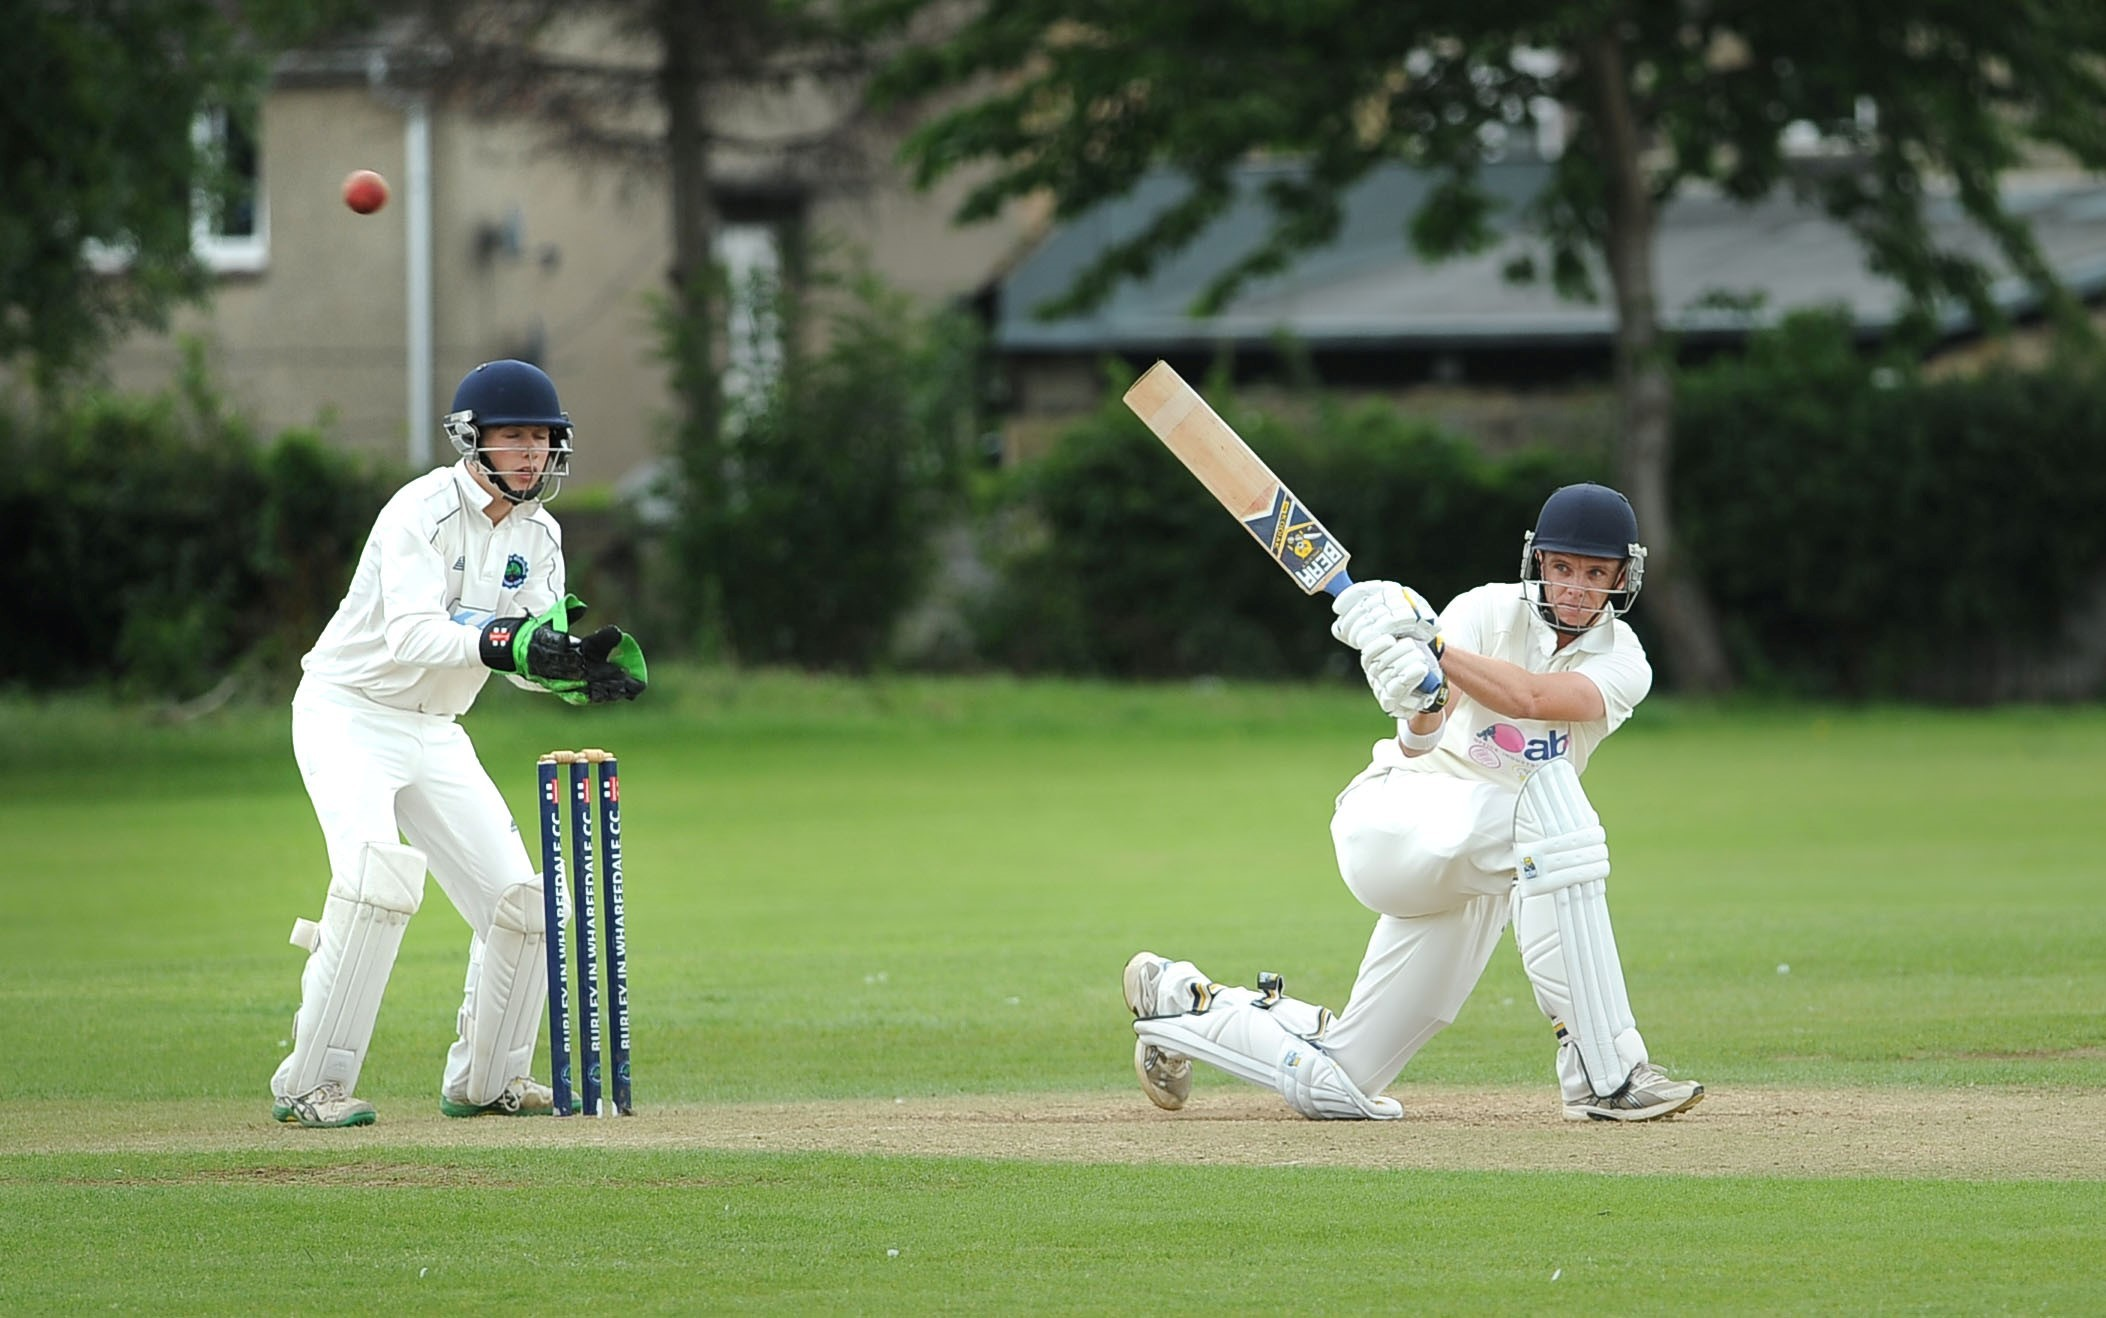 Horsforth batsman Ben Heritage hit a half century to lead Horsforth to a 56-run win against Addingham on Saturday